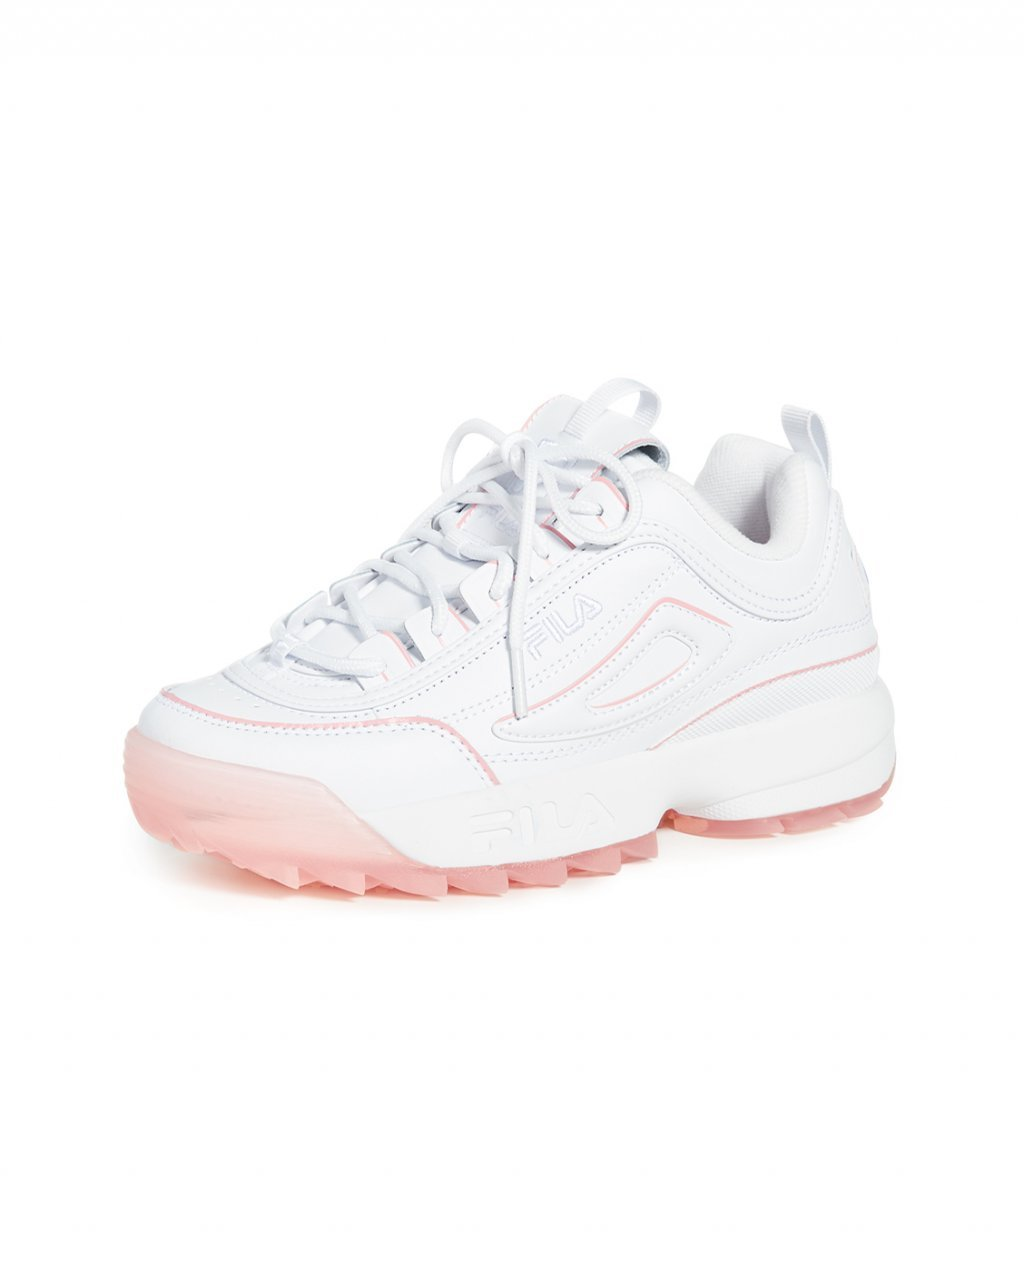 Fila Disruptor II Ice Sneakers